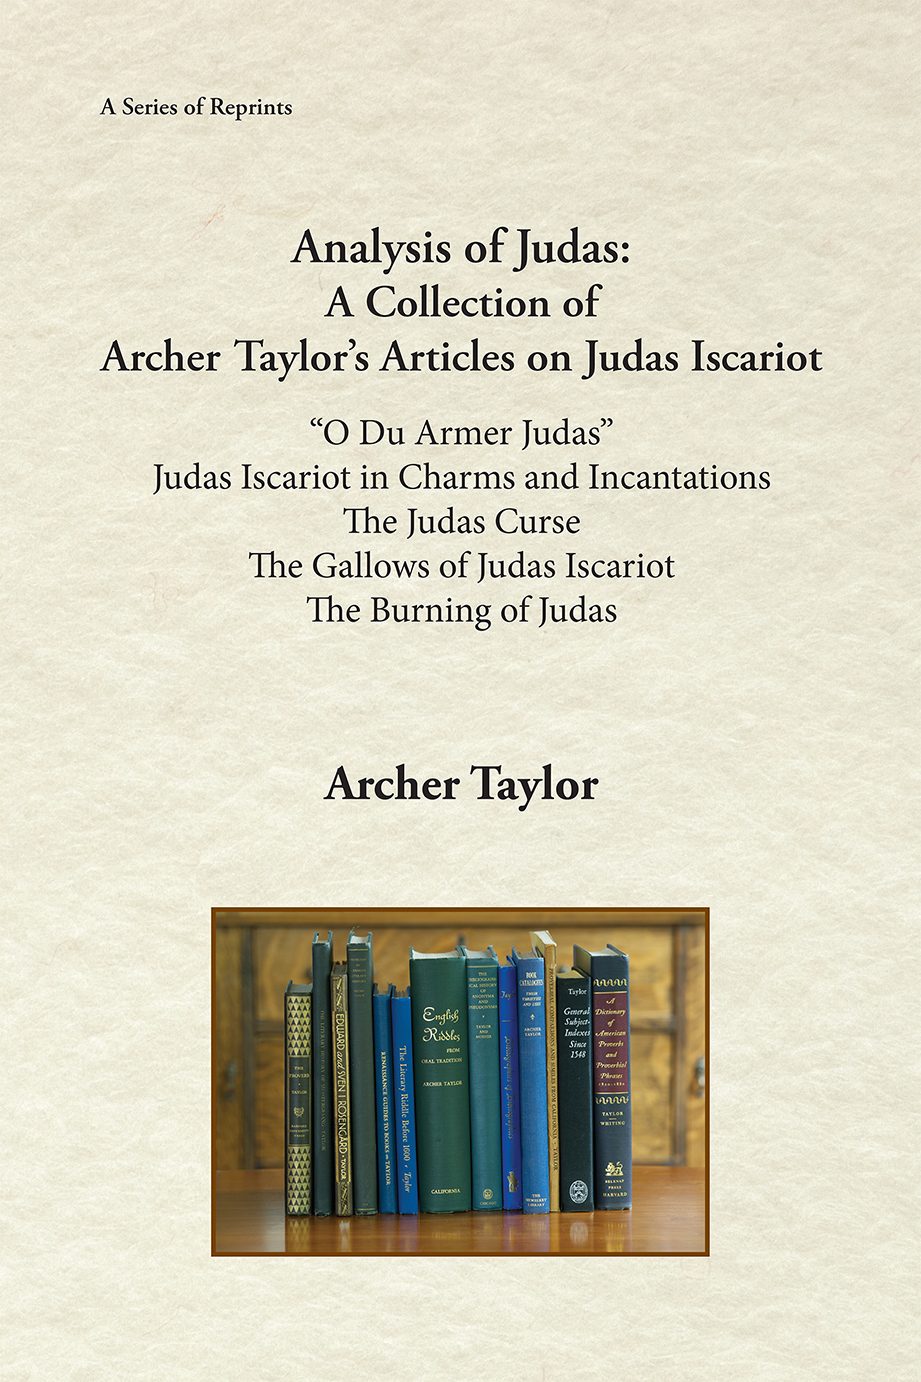 Analysis of Judas: A Collection of Archer Taylor's Articles on Judas Iscariot